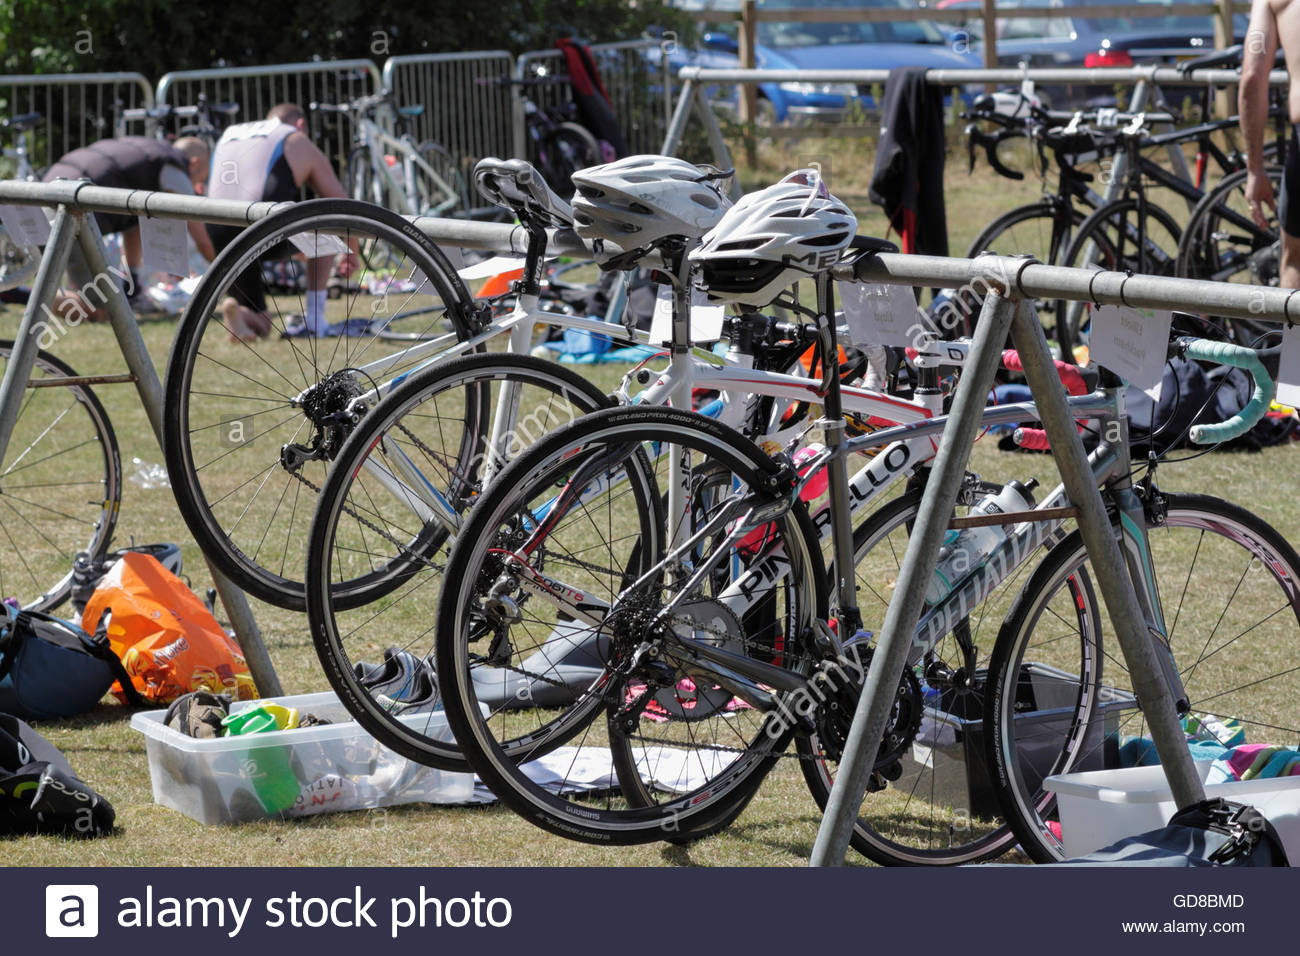 Cycle stand in the transition area, City of Birmingham Triathlon 2015, Sutton Park, UK. - Stock Image